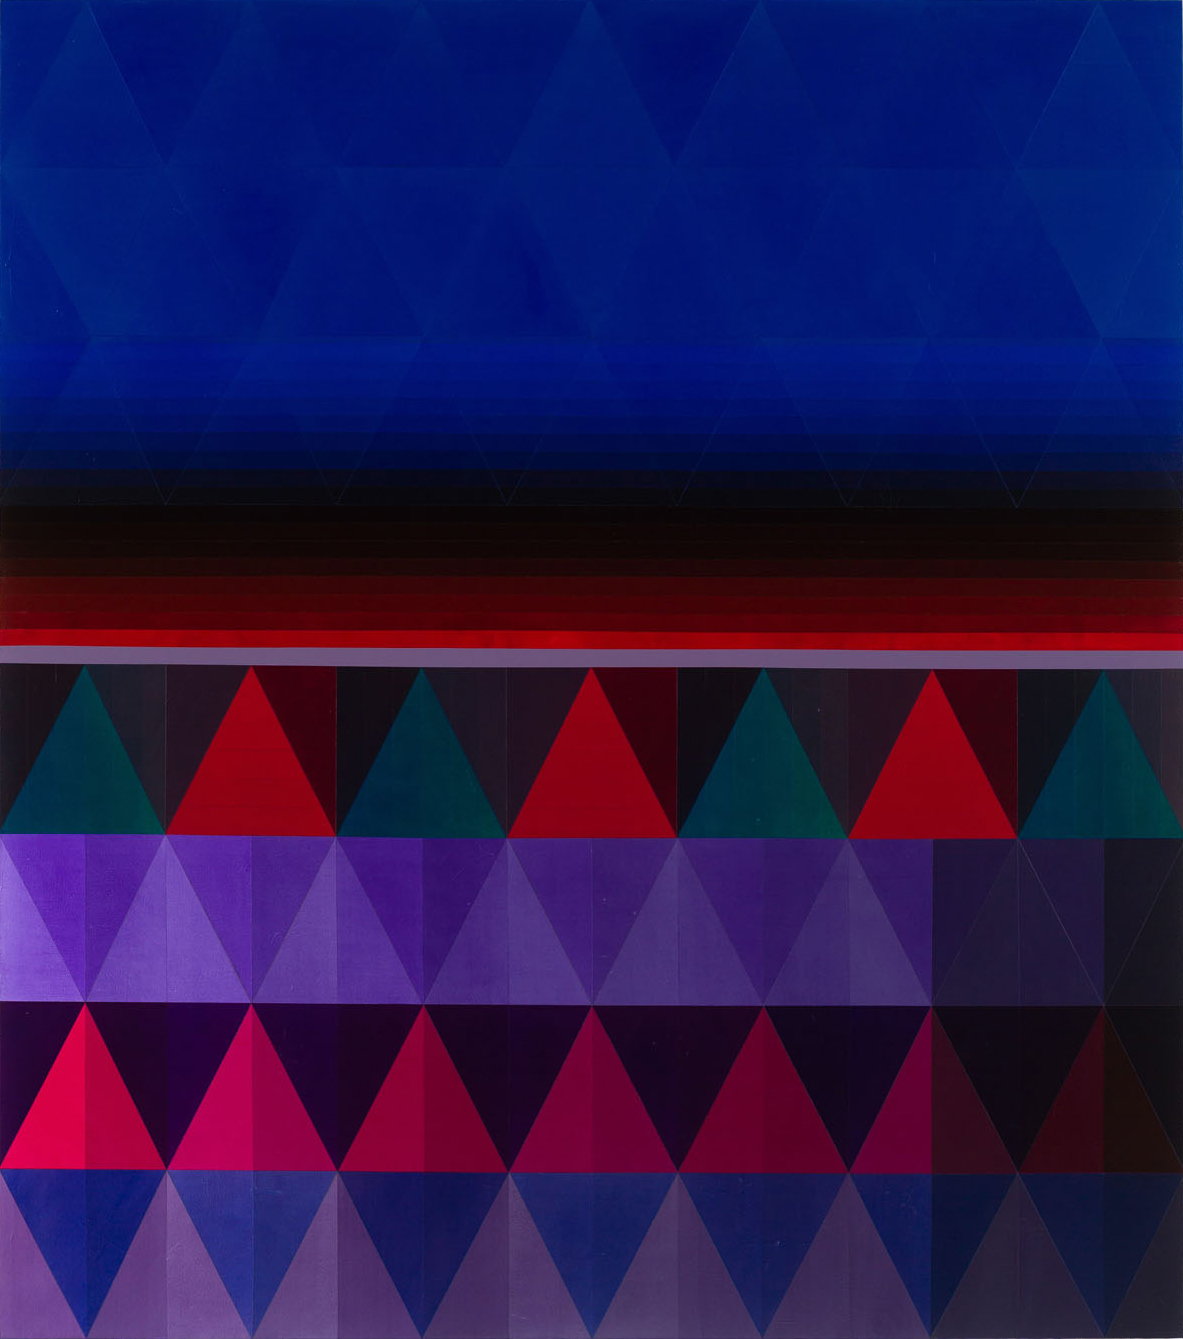 2016 Acrylic On Canvas 96 x 84 inches - Marc Straus Gallery